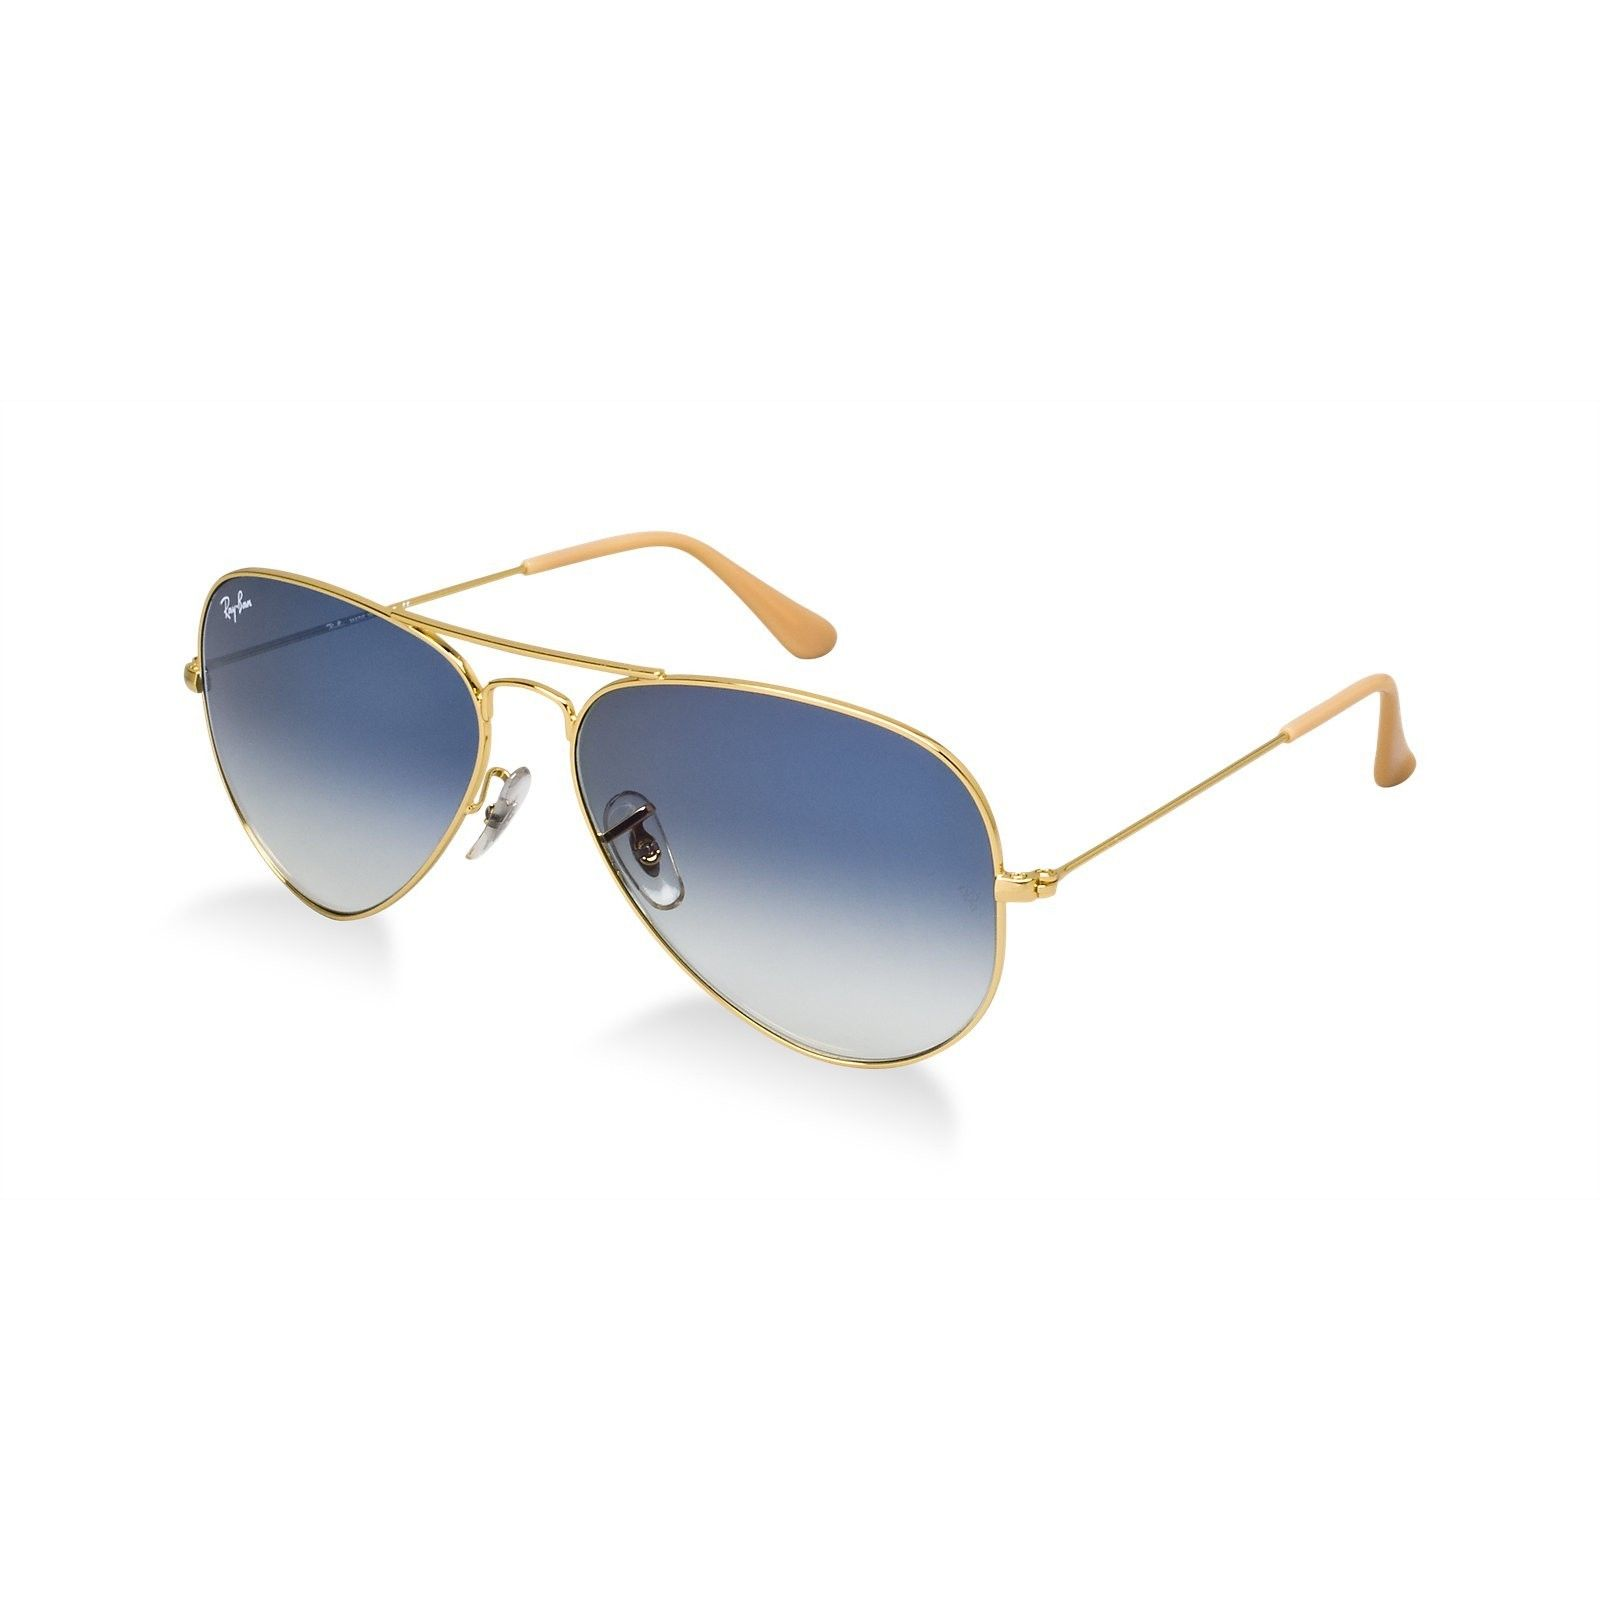 1bc2f465d622f Ray-Ban Aviator RB3025 Gold Aviator Light Blue Lenses Sunglasses (Aviator  Gold Aviator Light Blue Lenses Sunglasses)